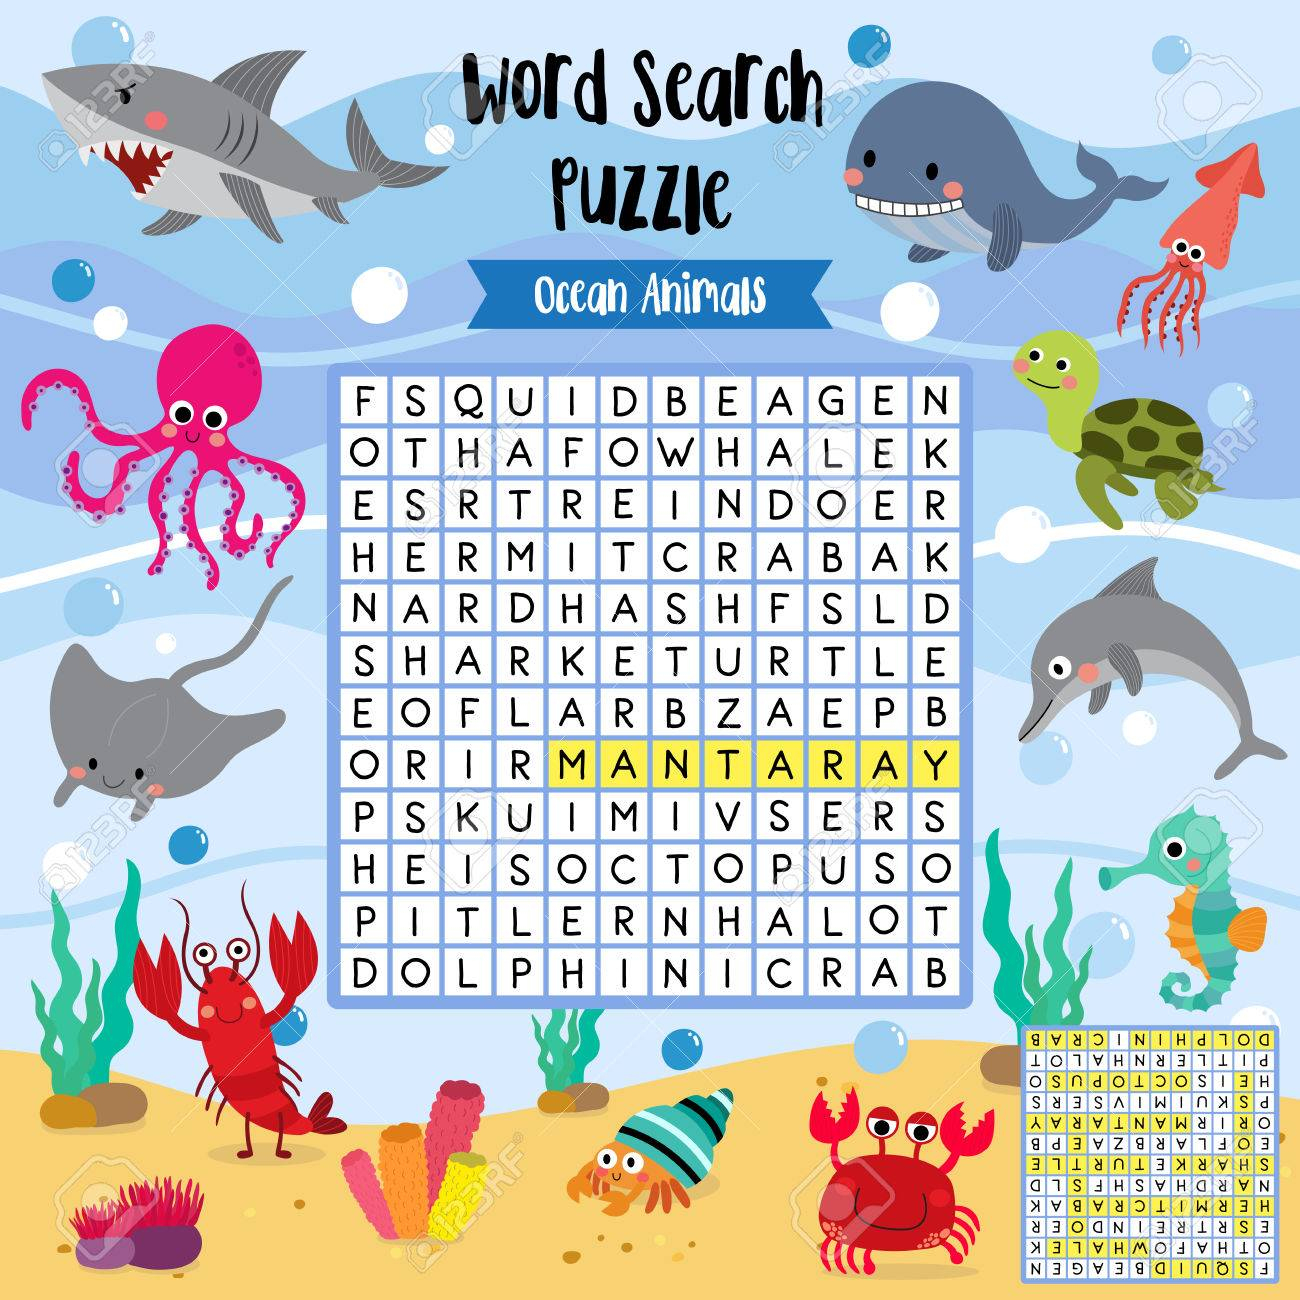 Words Search Puzzle Game Of Ocean Animals For Preschool Kids - Printable Animal Puzzle